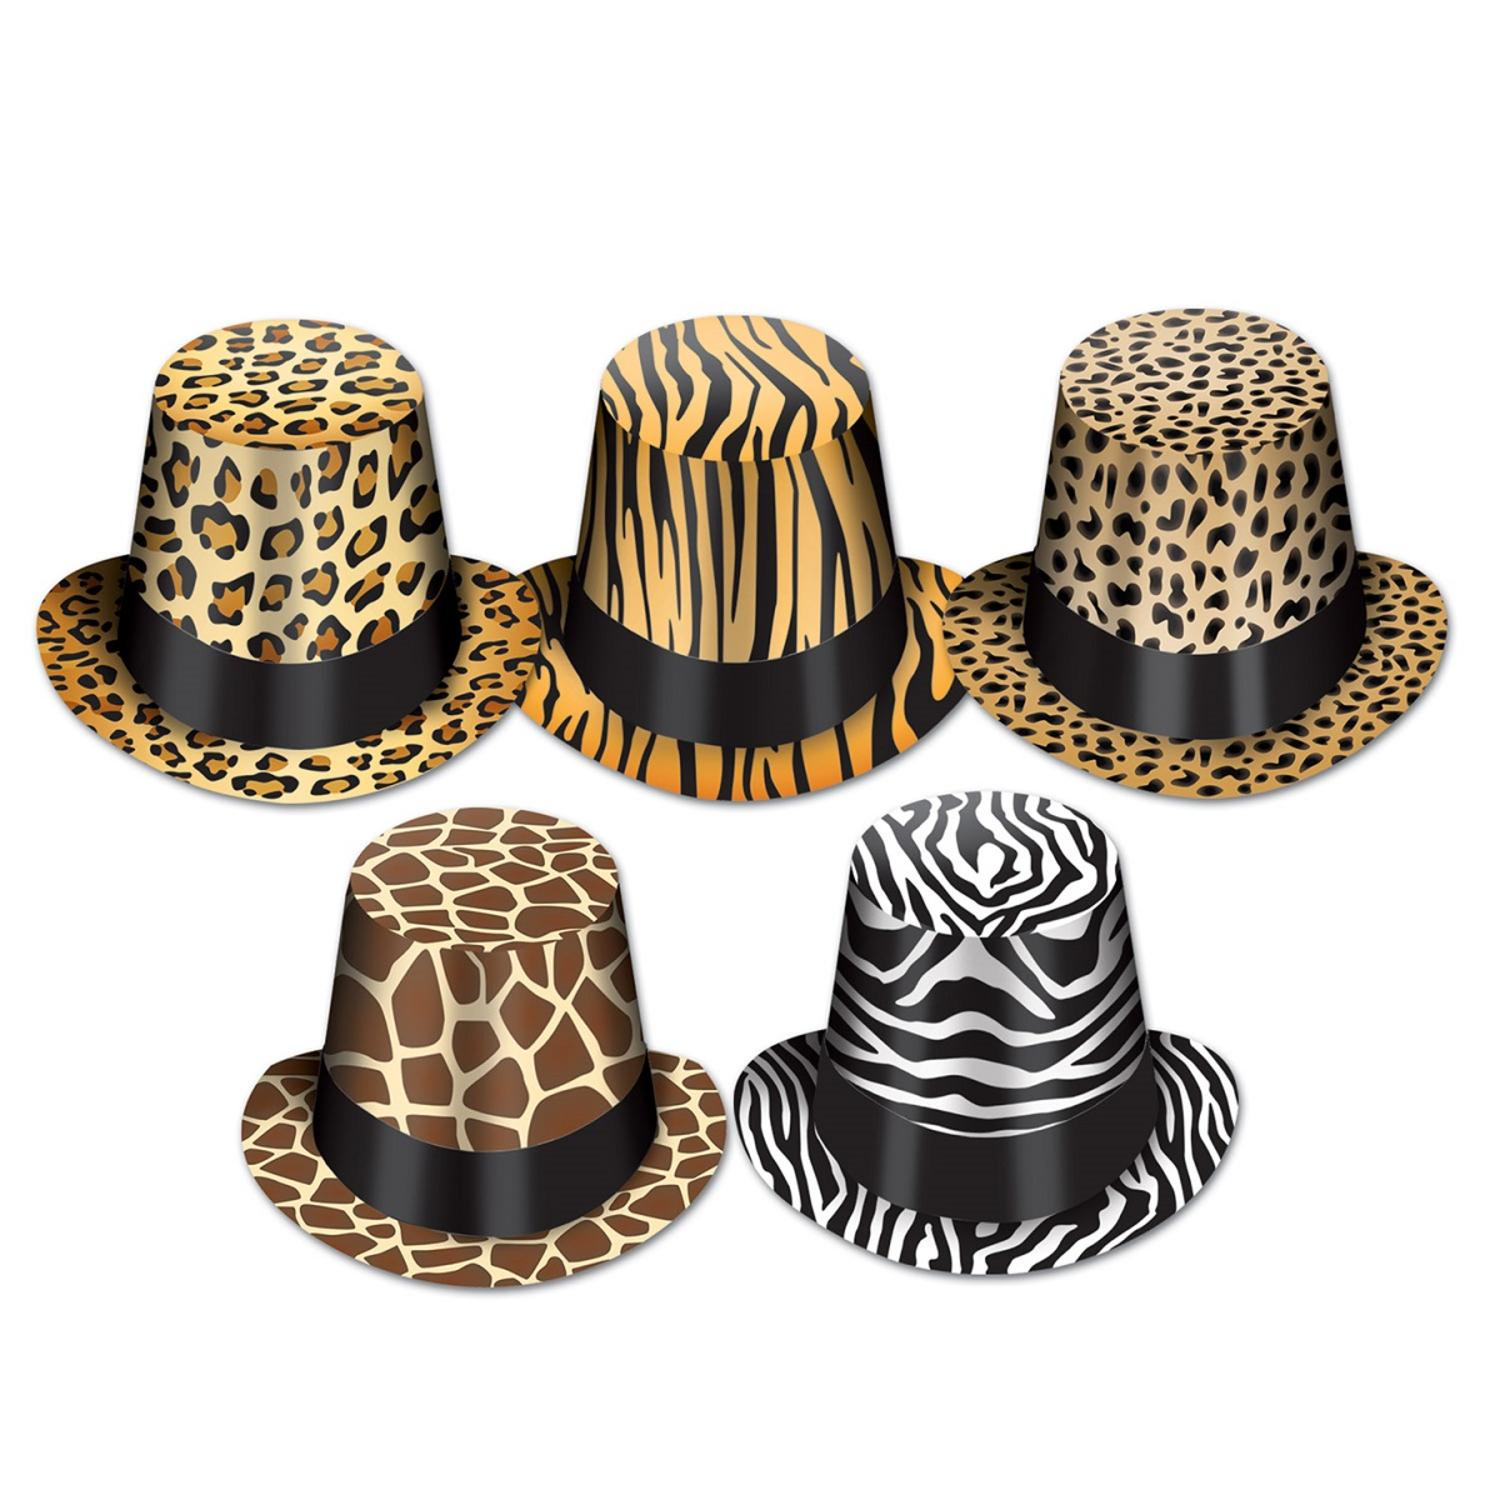 Club Pack of 25 Variety Pack Animal Print Hi-Hat Costume Accessories